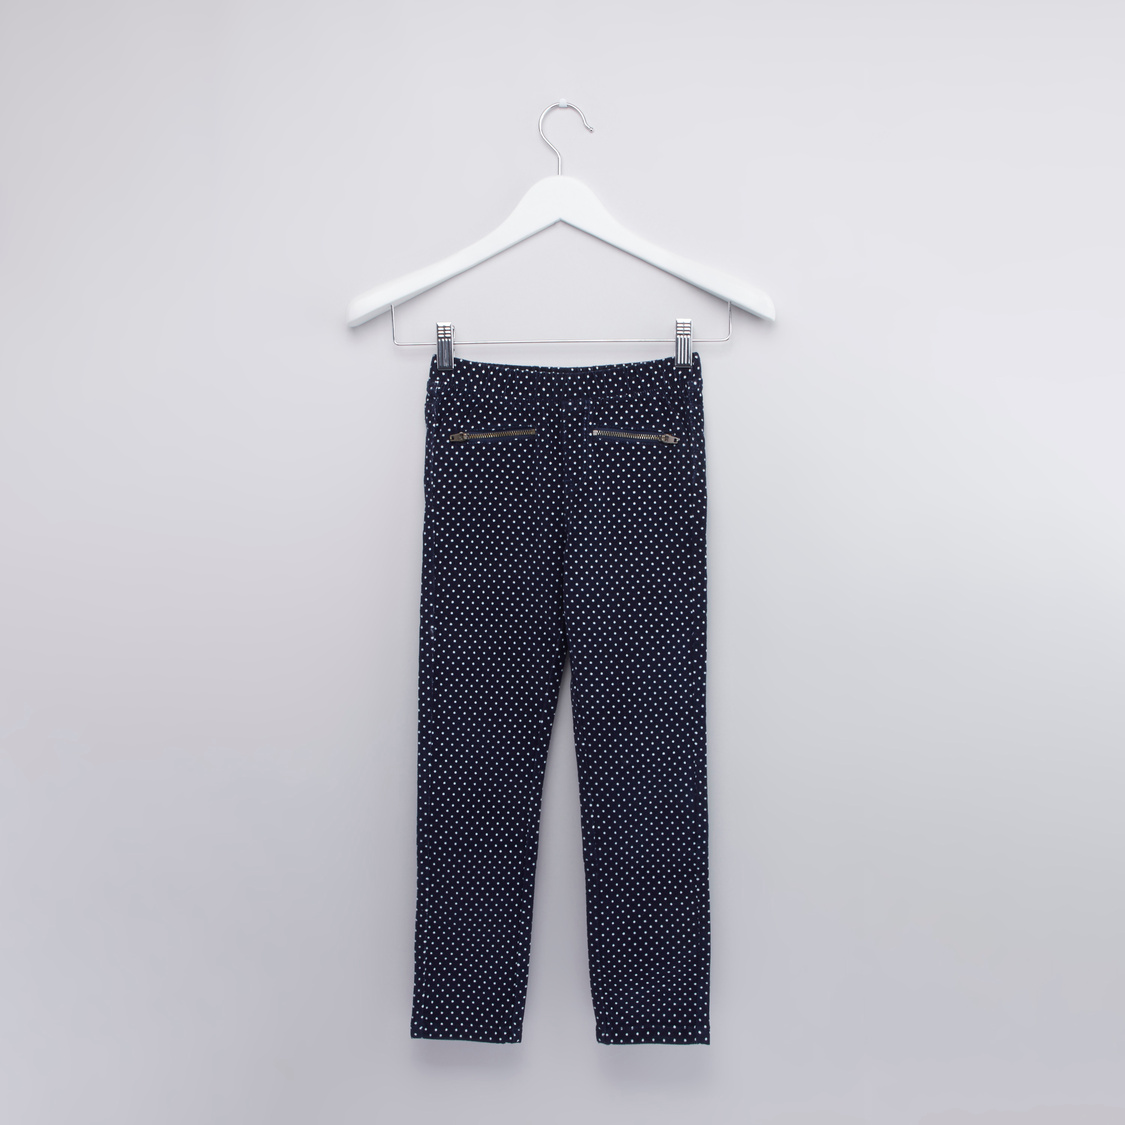 Polka Dot Printed Pants with Elasticised Waistband and Pocket Detail